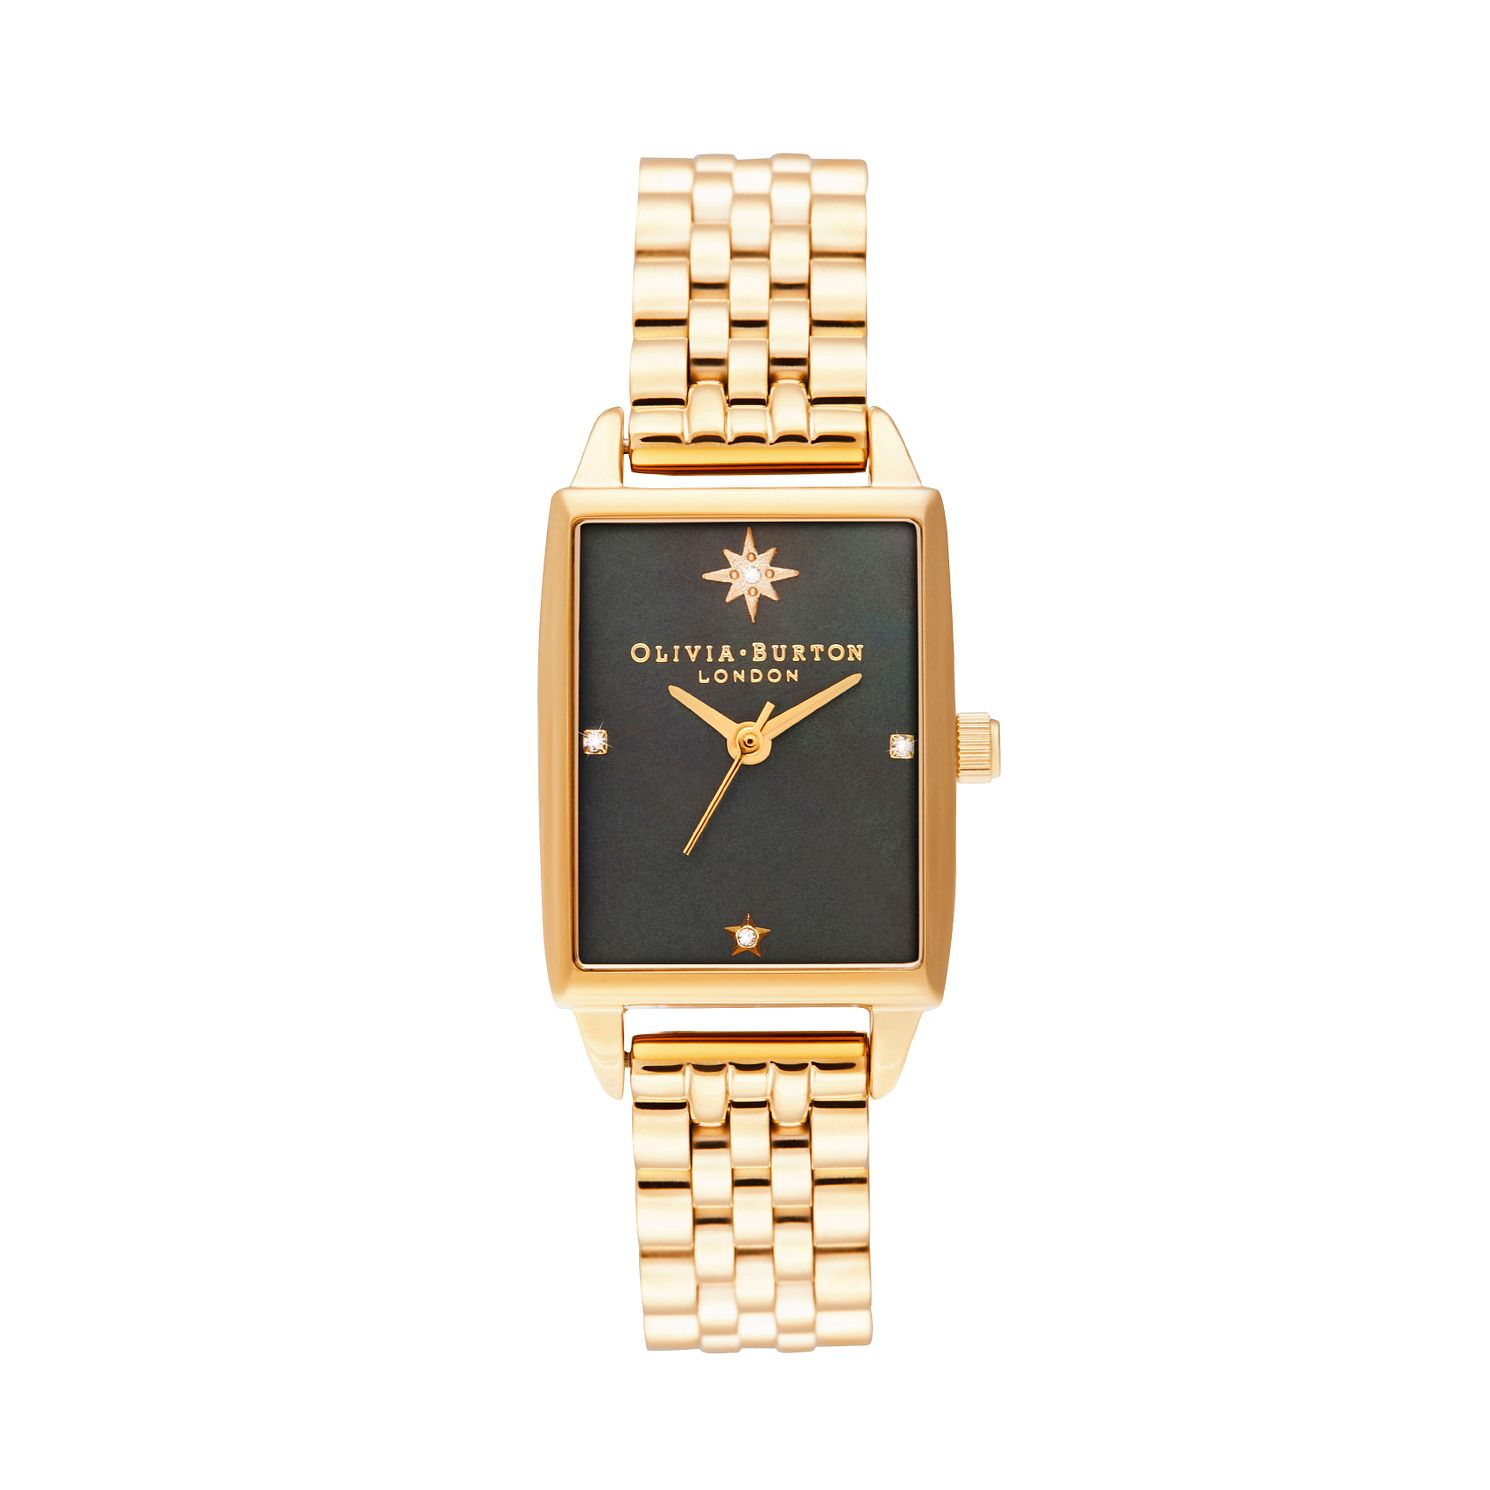 Olivia Burton Celestial Ladies' Gold Tone Bracelet Watch - Product number 8208883